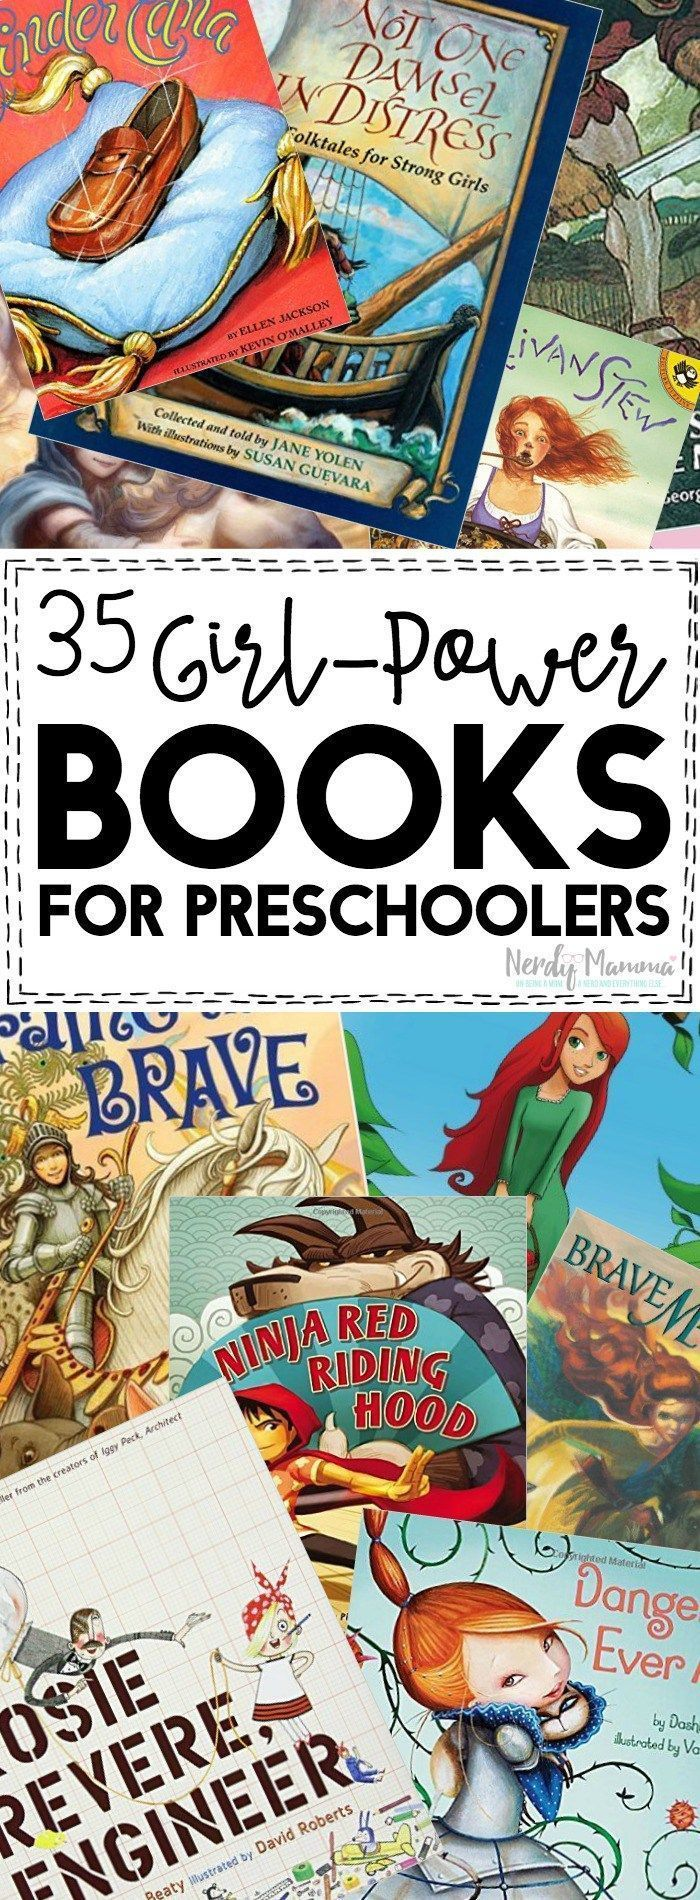 35 girl power books for preschoolers and toddlers. Love these positive messages for young girls!